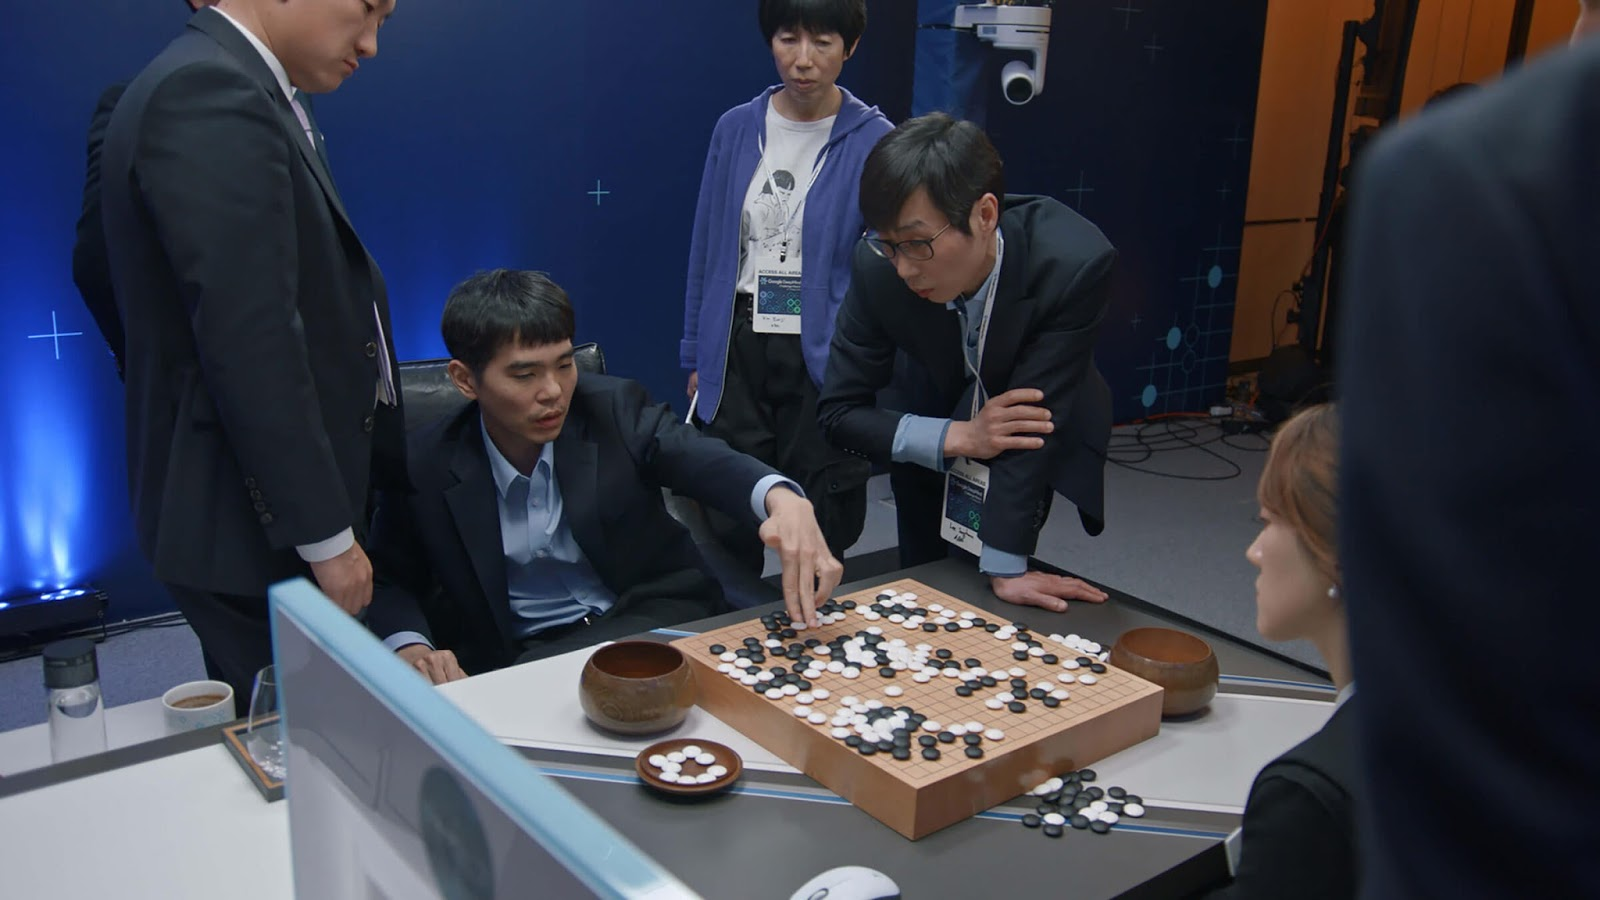 Follow DeepMind's Quest to Conquer Go Champion Lee Sedol on Netflix